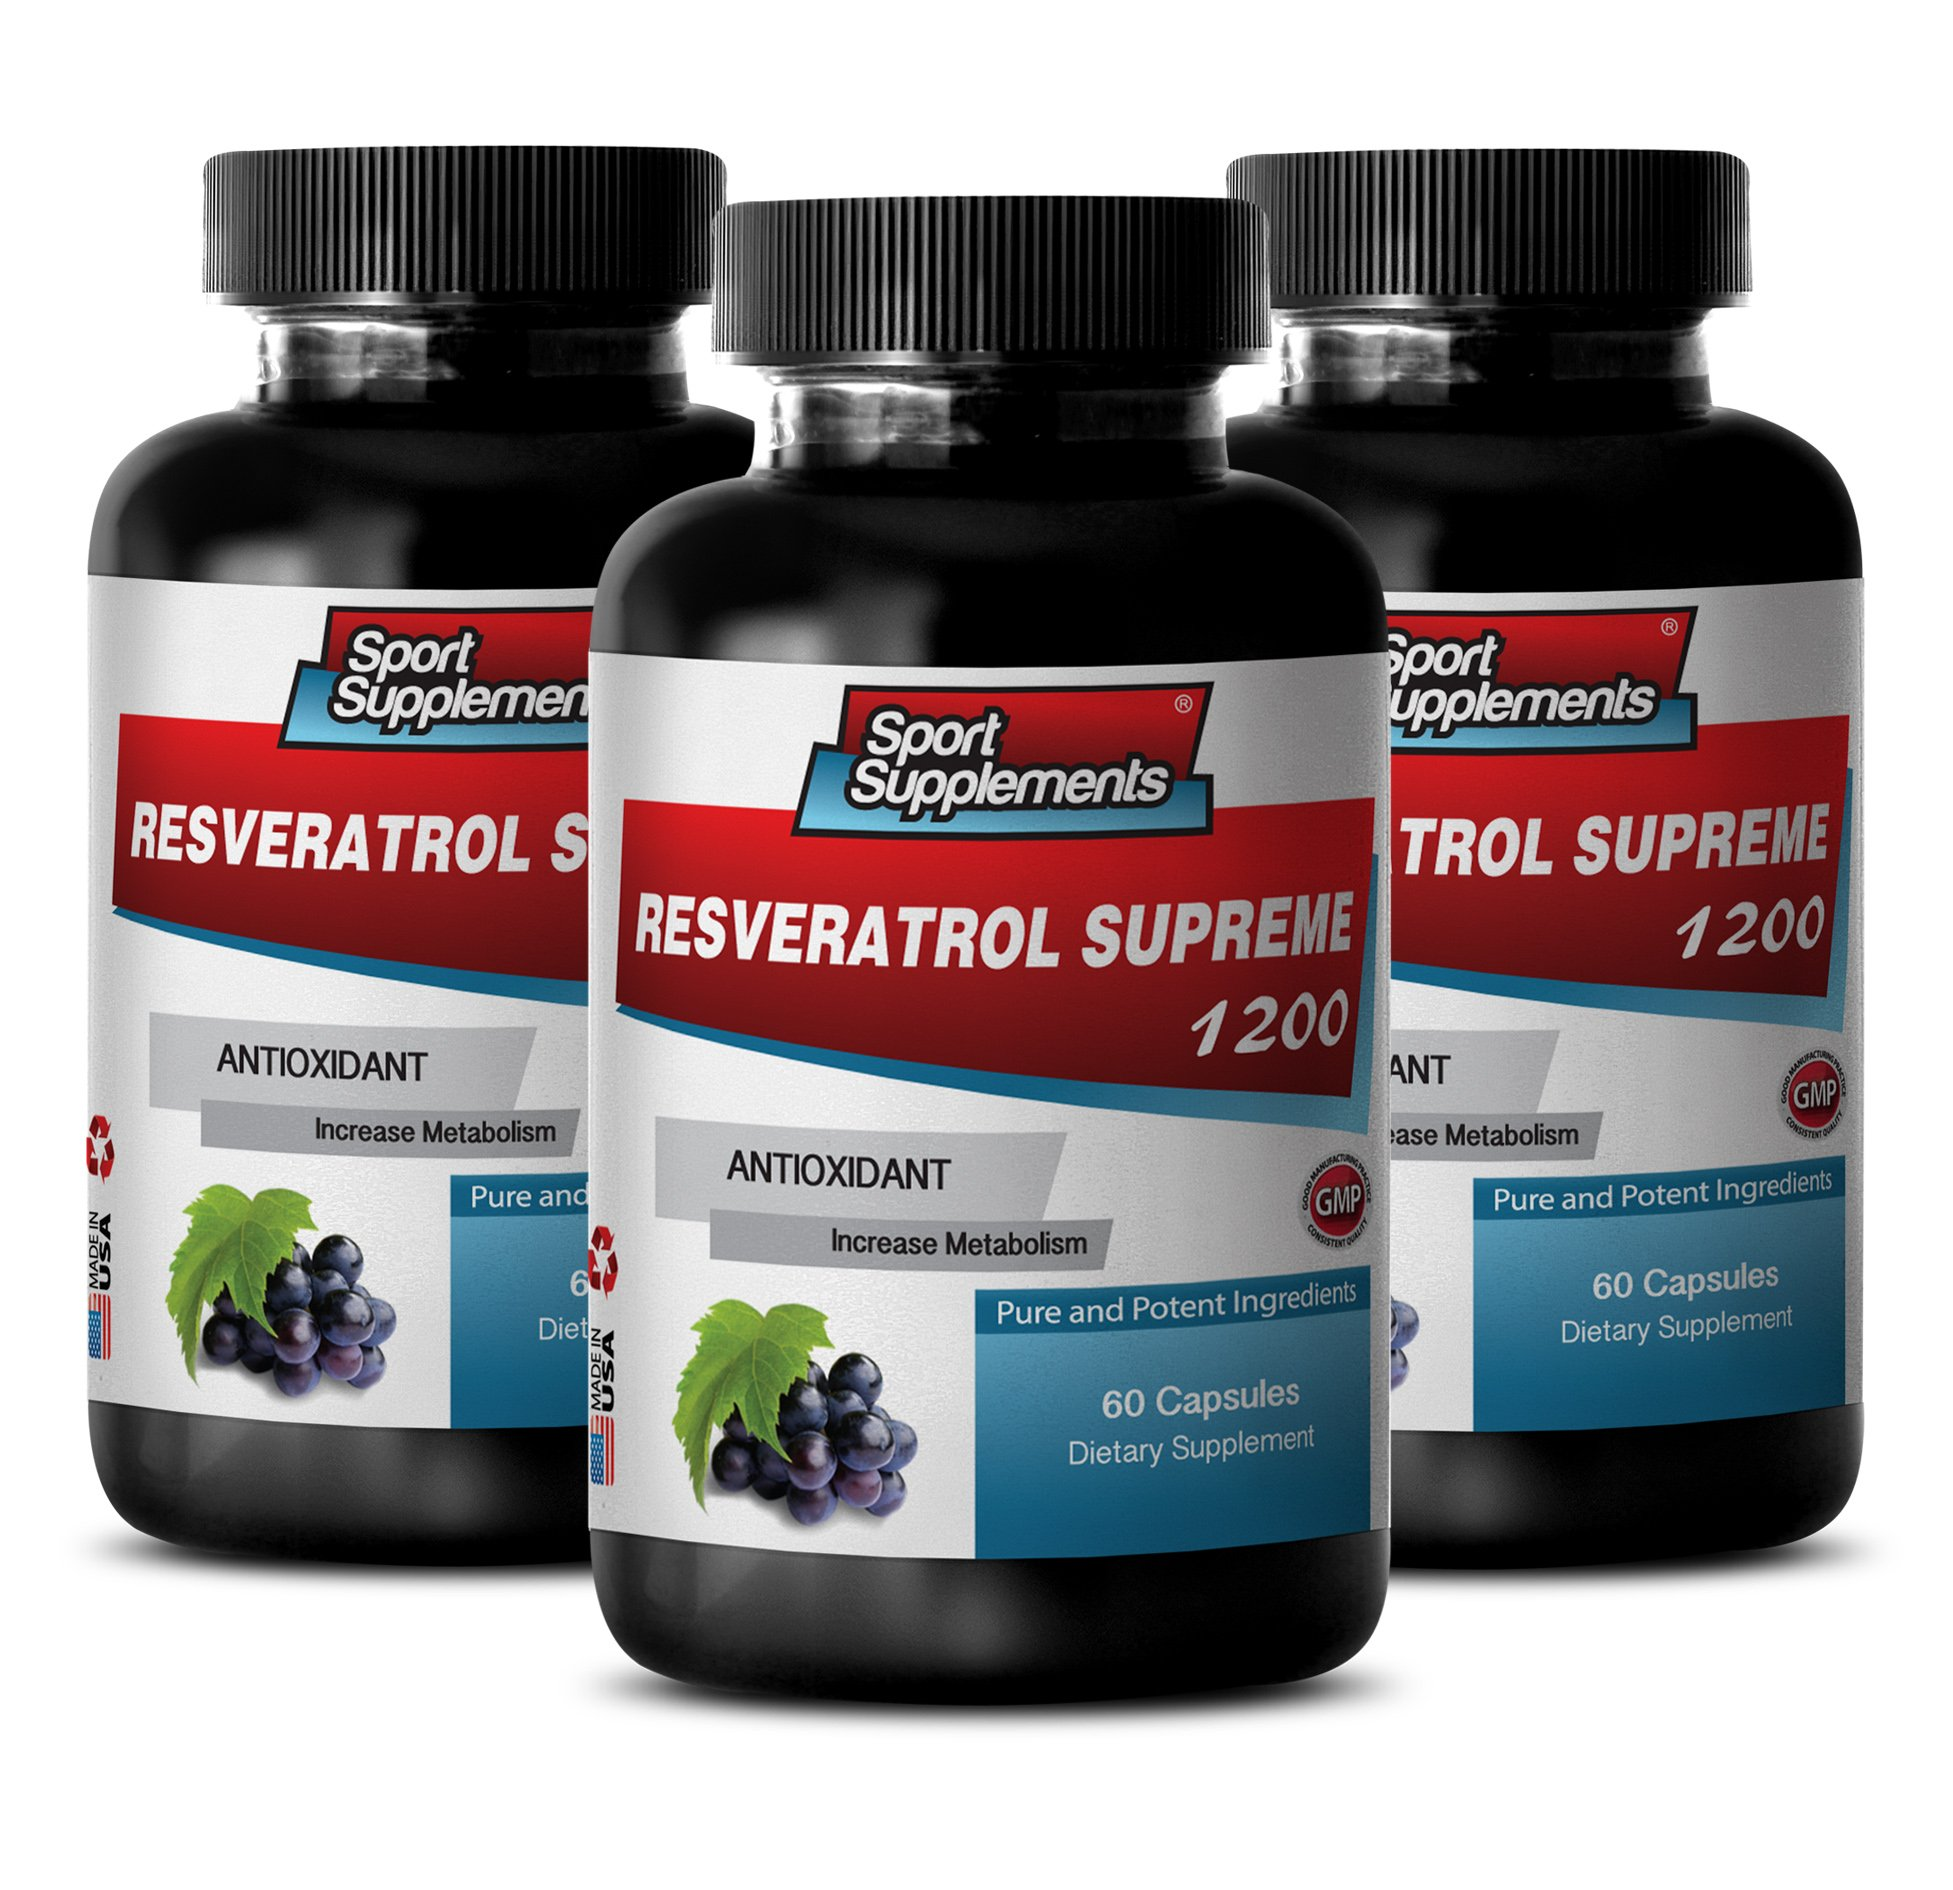 Blood pressure formula - RESVERATROL SUPREME 1200mg - Resveratrol antioxidant - 3 Bottles 180 Capsules by Sport Supplements